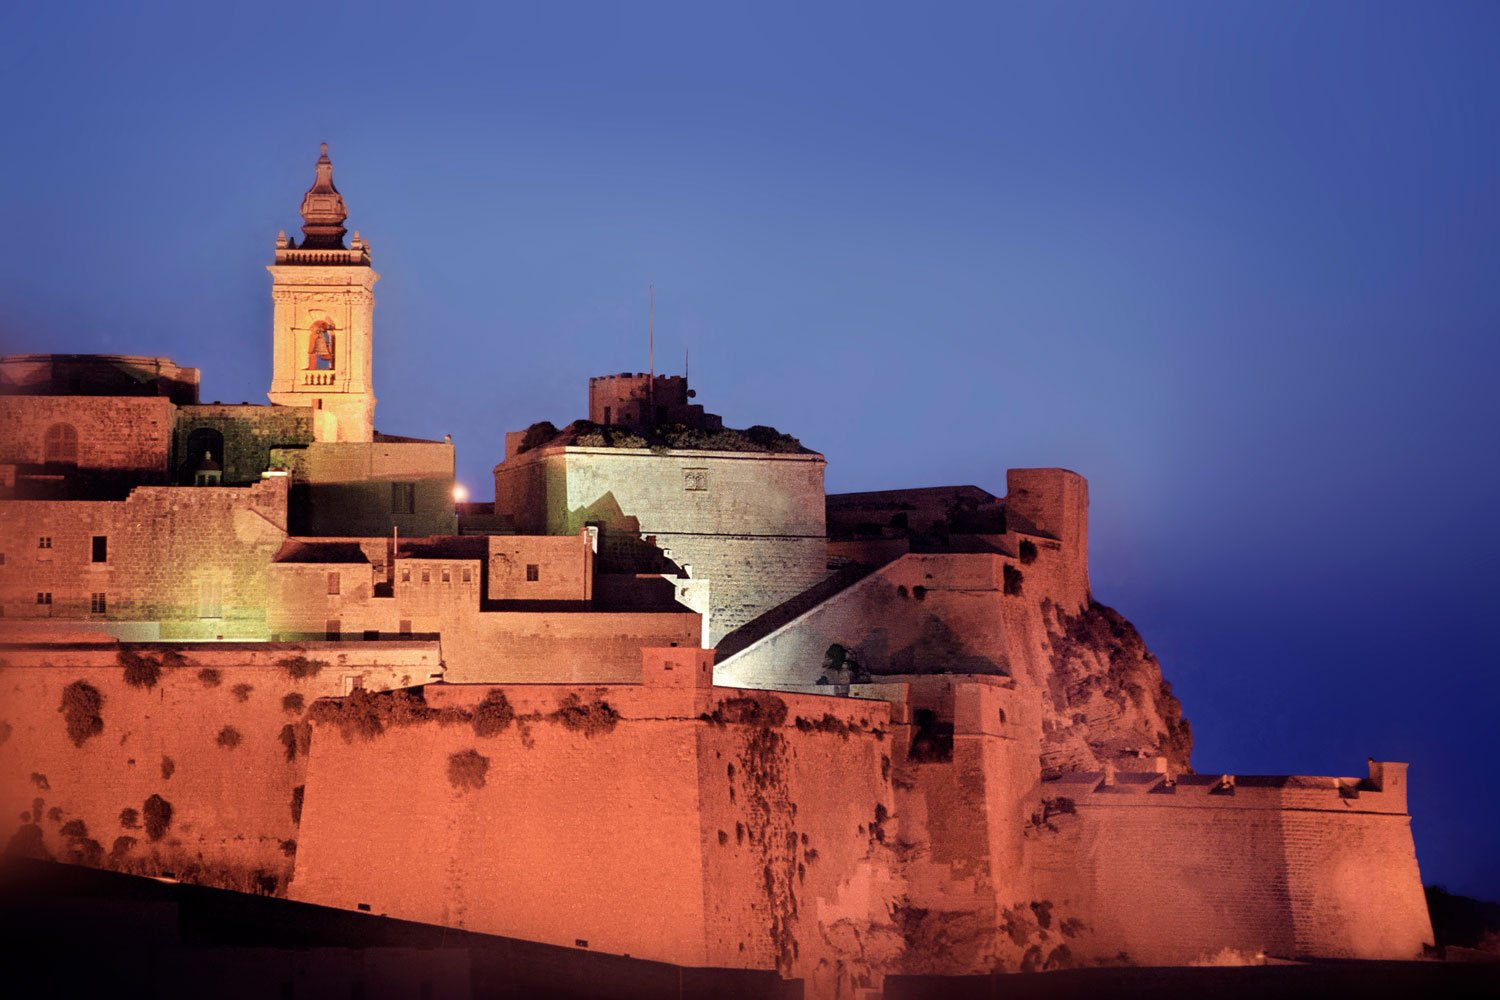 Gozo – Enjoy Malta's sister island in style with a luxury chauffeur service